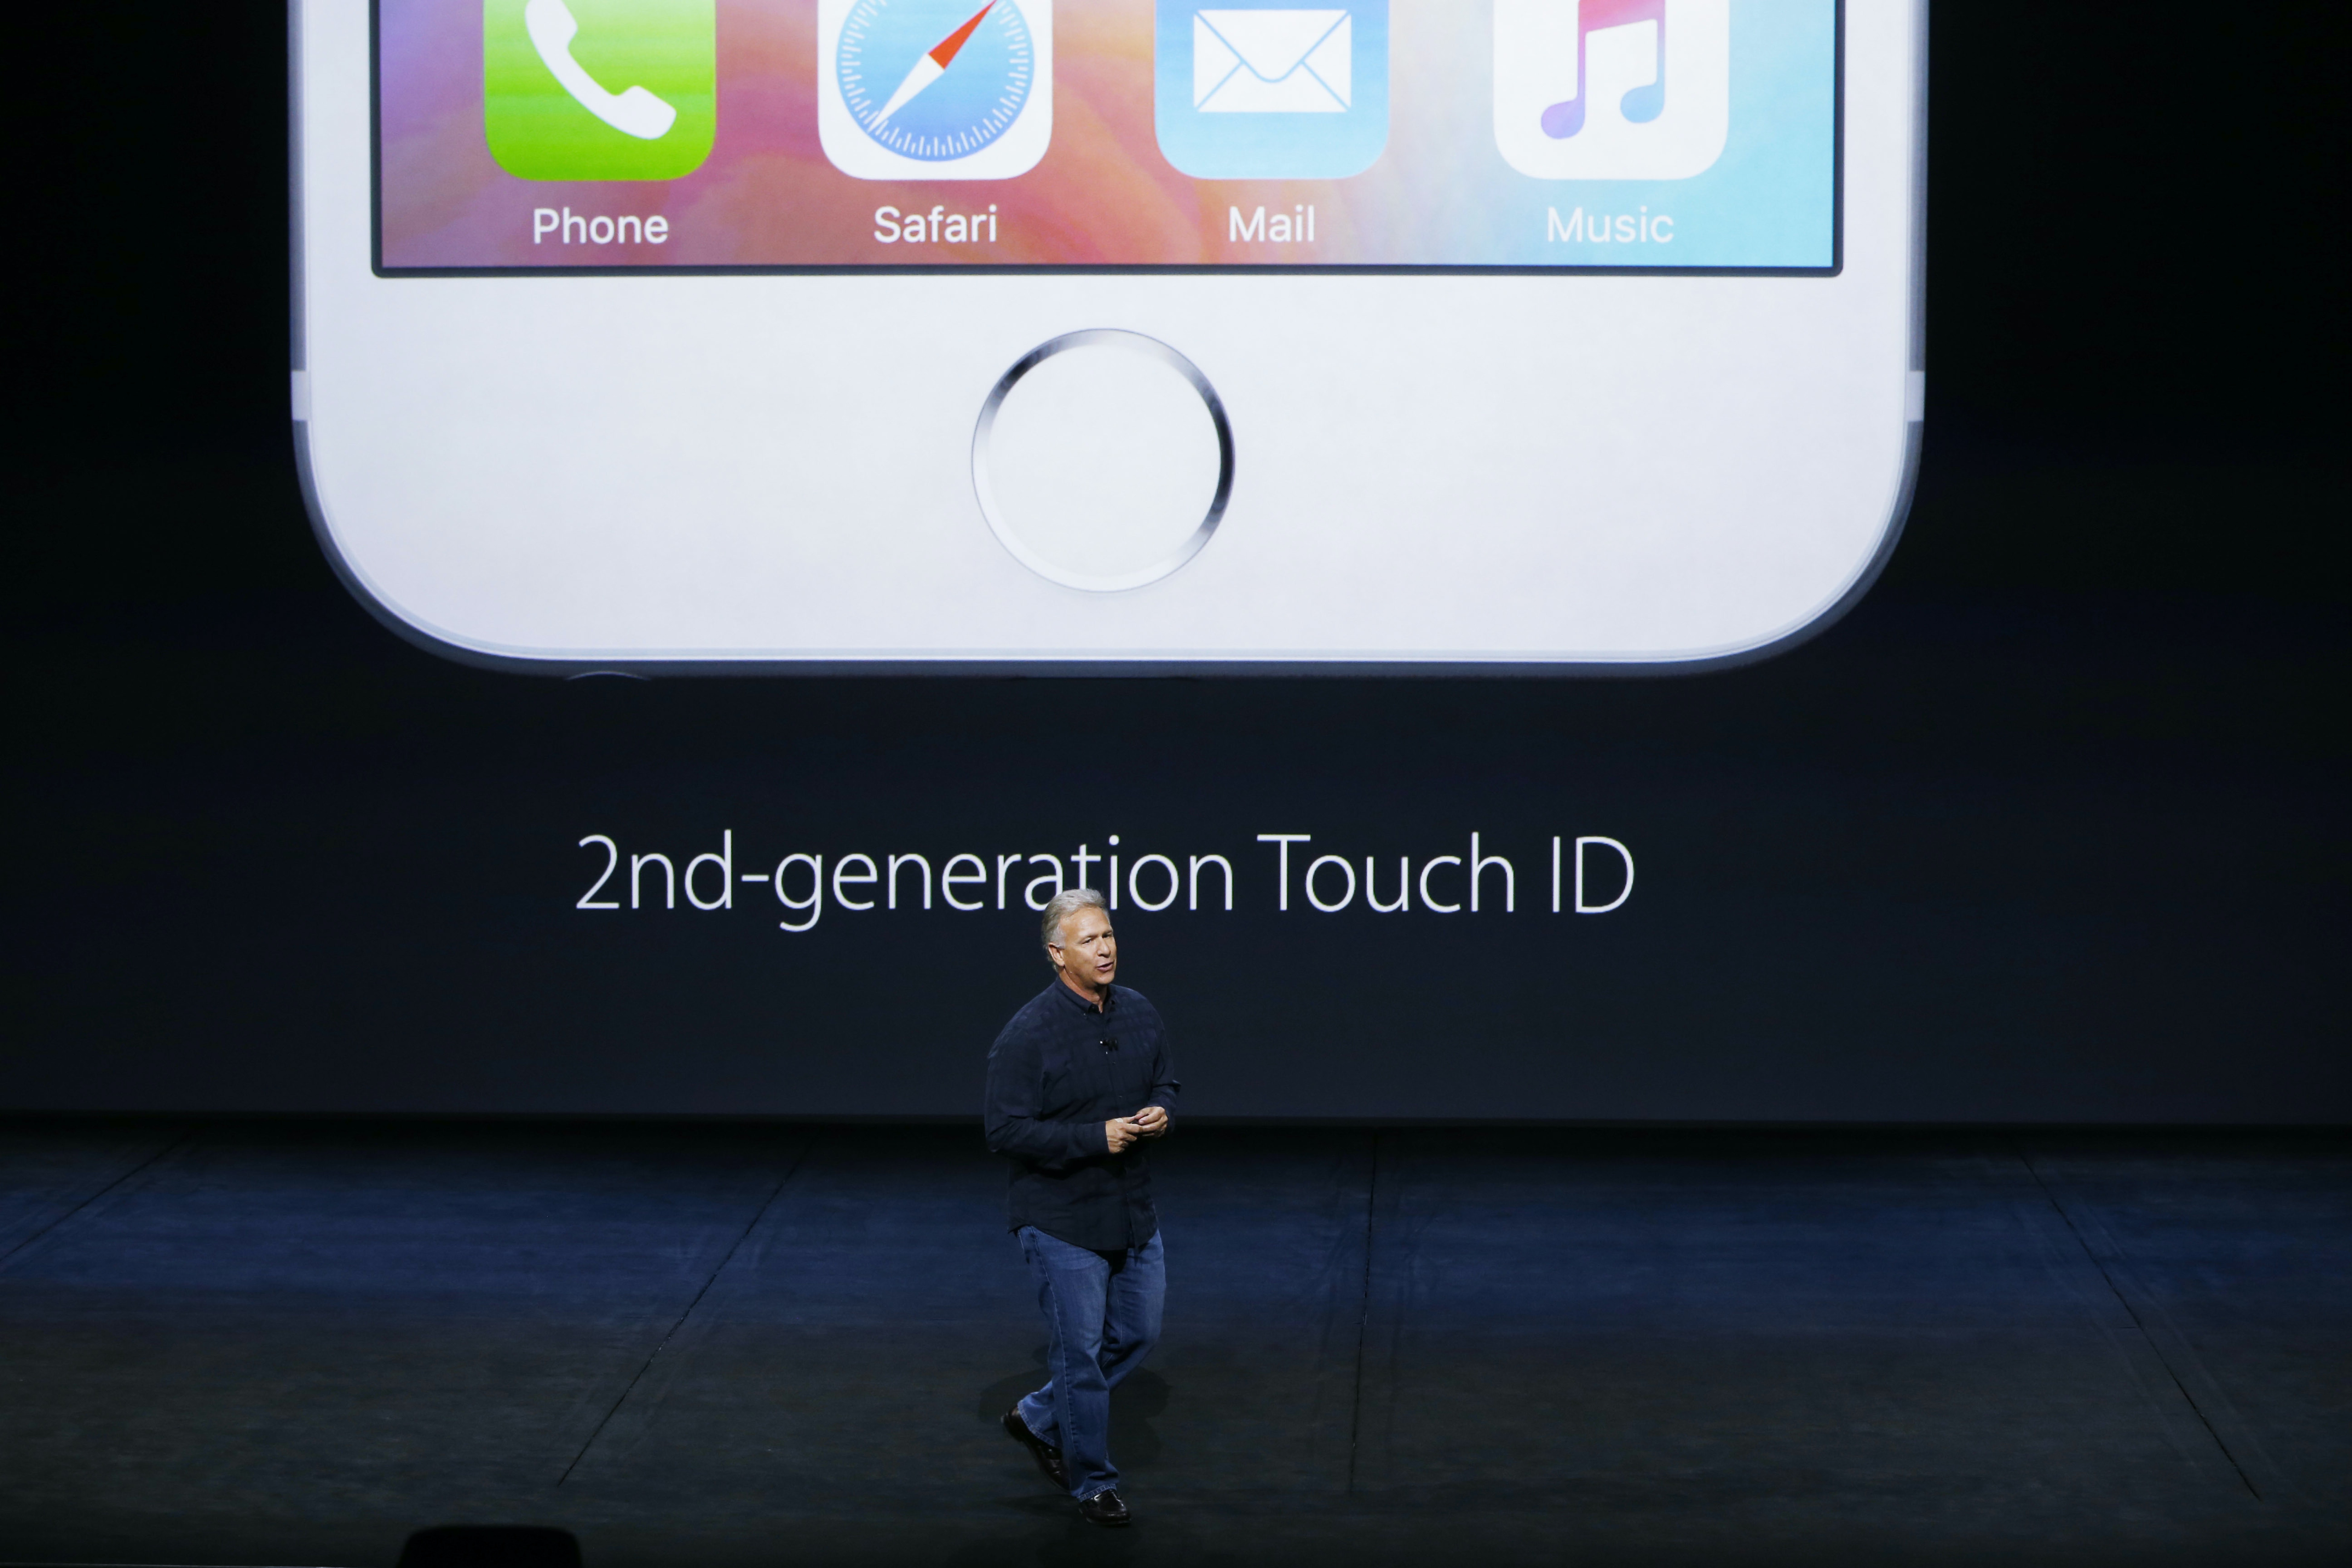 Apple Senior Vice President of Worldwide Marketing Phil Schiller speaks about the Touch ID on the new iPhone 6s and 6s Plus during a Special Event at Bill Graham Civic Auditorium September 9, 2015 in San Francisco, California.